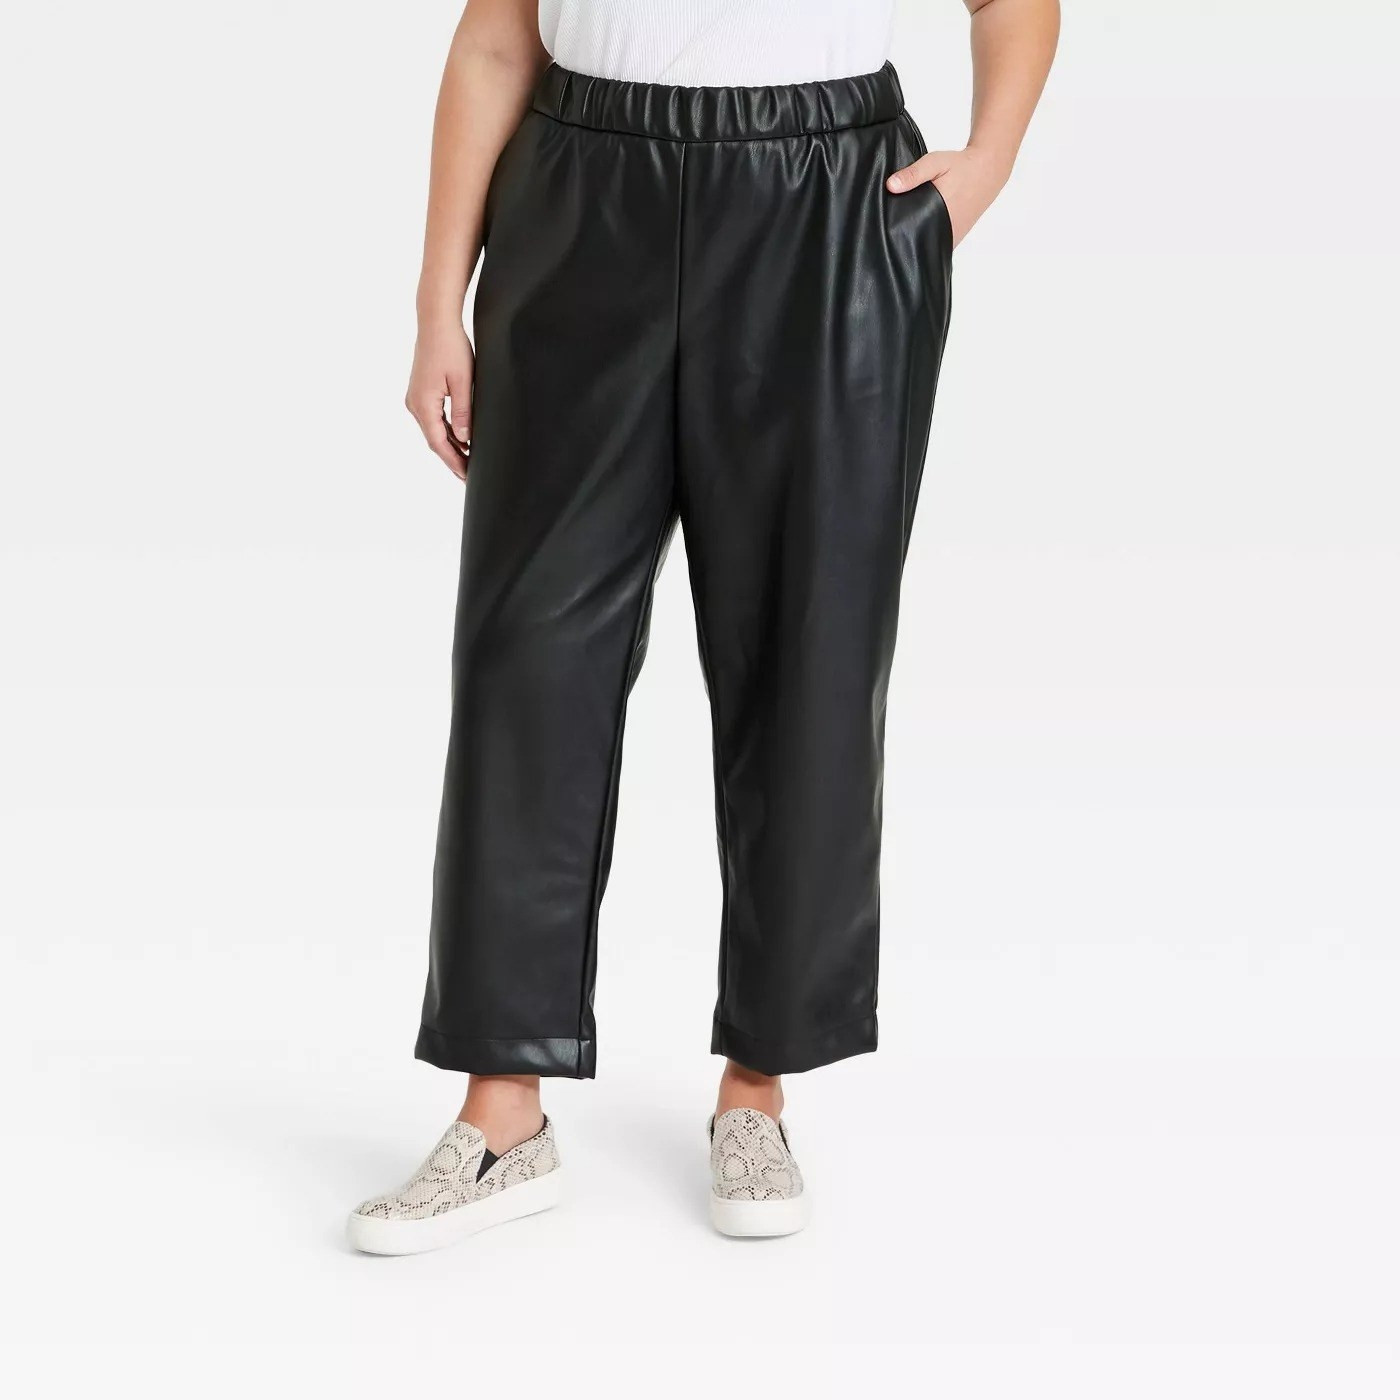 Model wearing black pleather pants, goes past the ankle